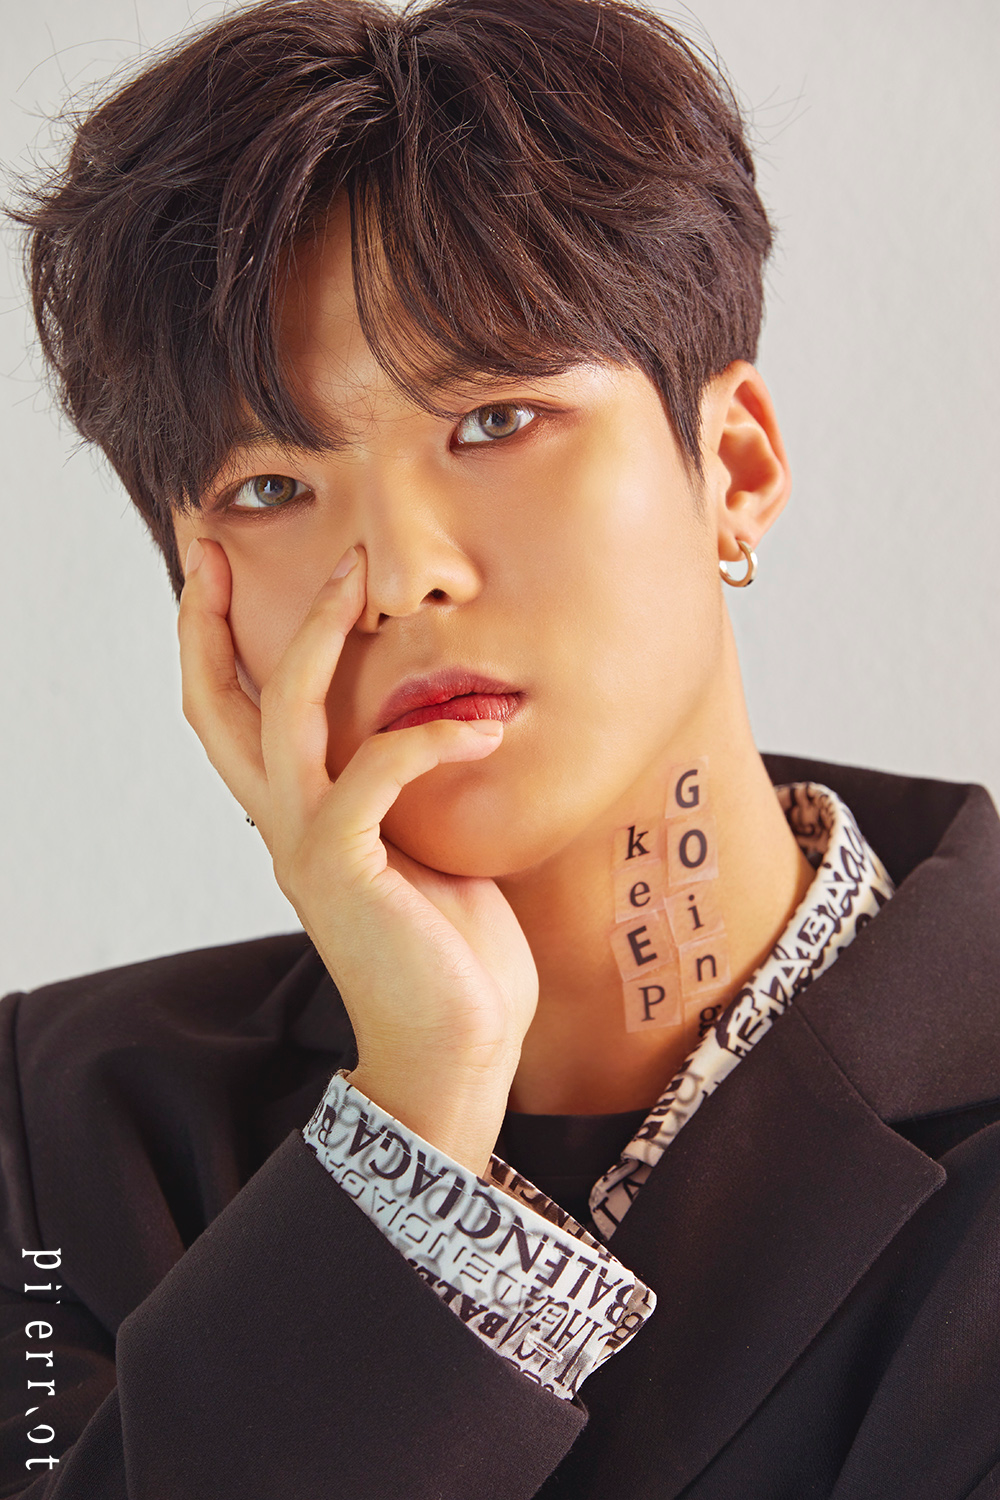 Hyunwoo: D-CRUNCH announces his departure from the group